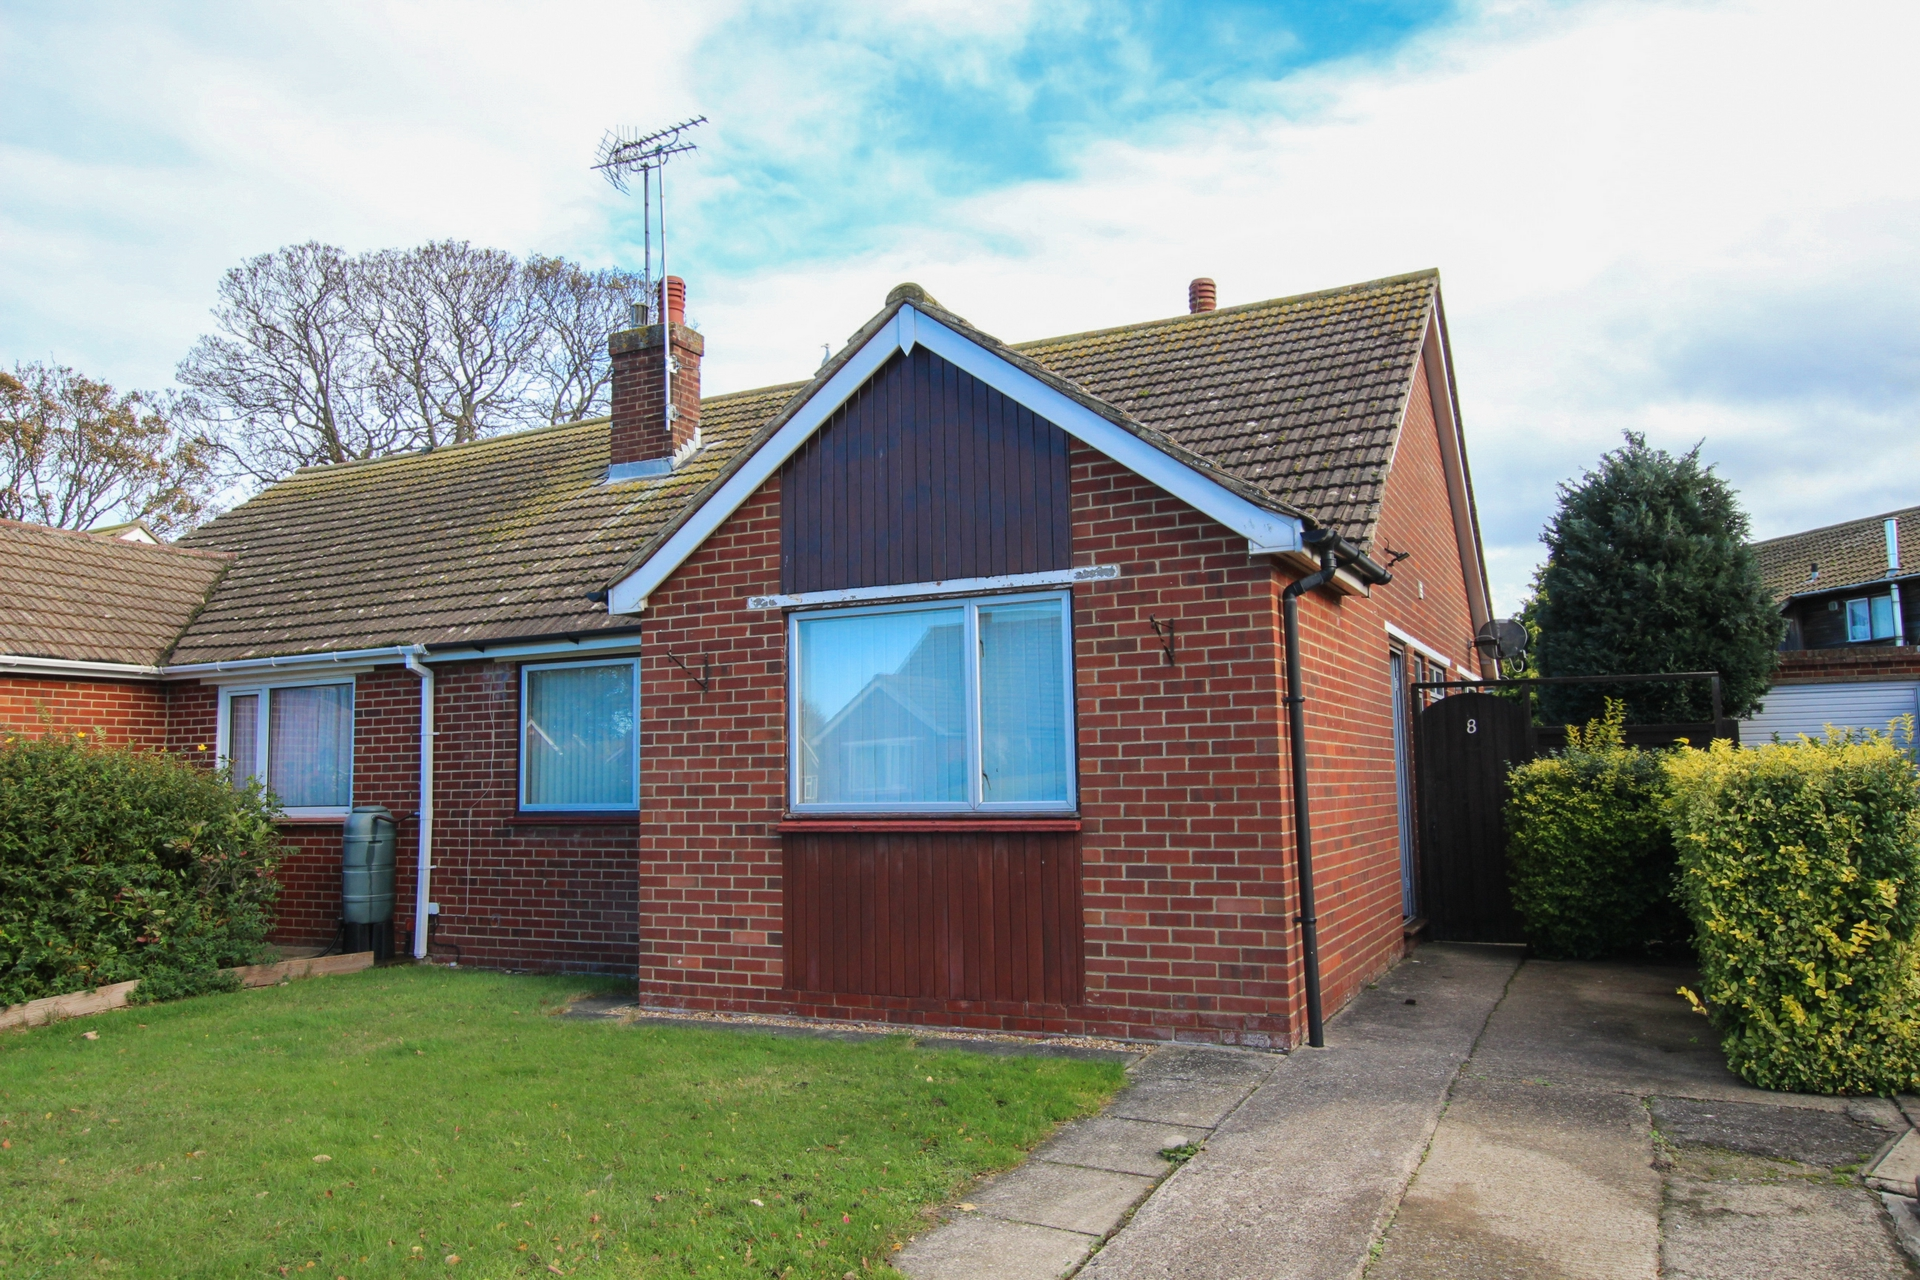 2 bed bungalow to rent in Maxine Gardens, St. Peters, CT10 - Property Image 1